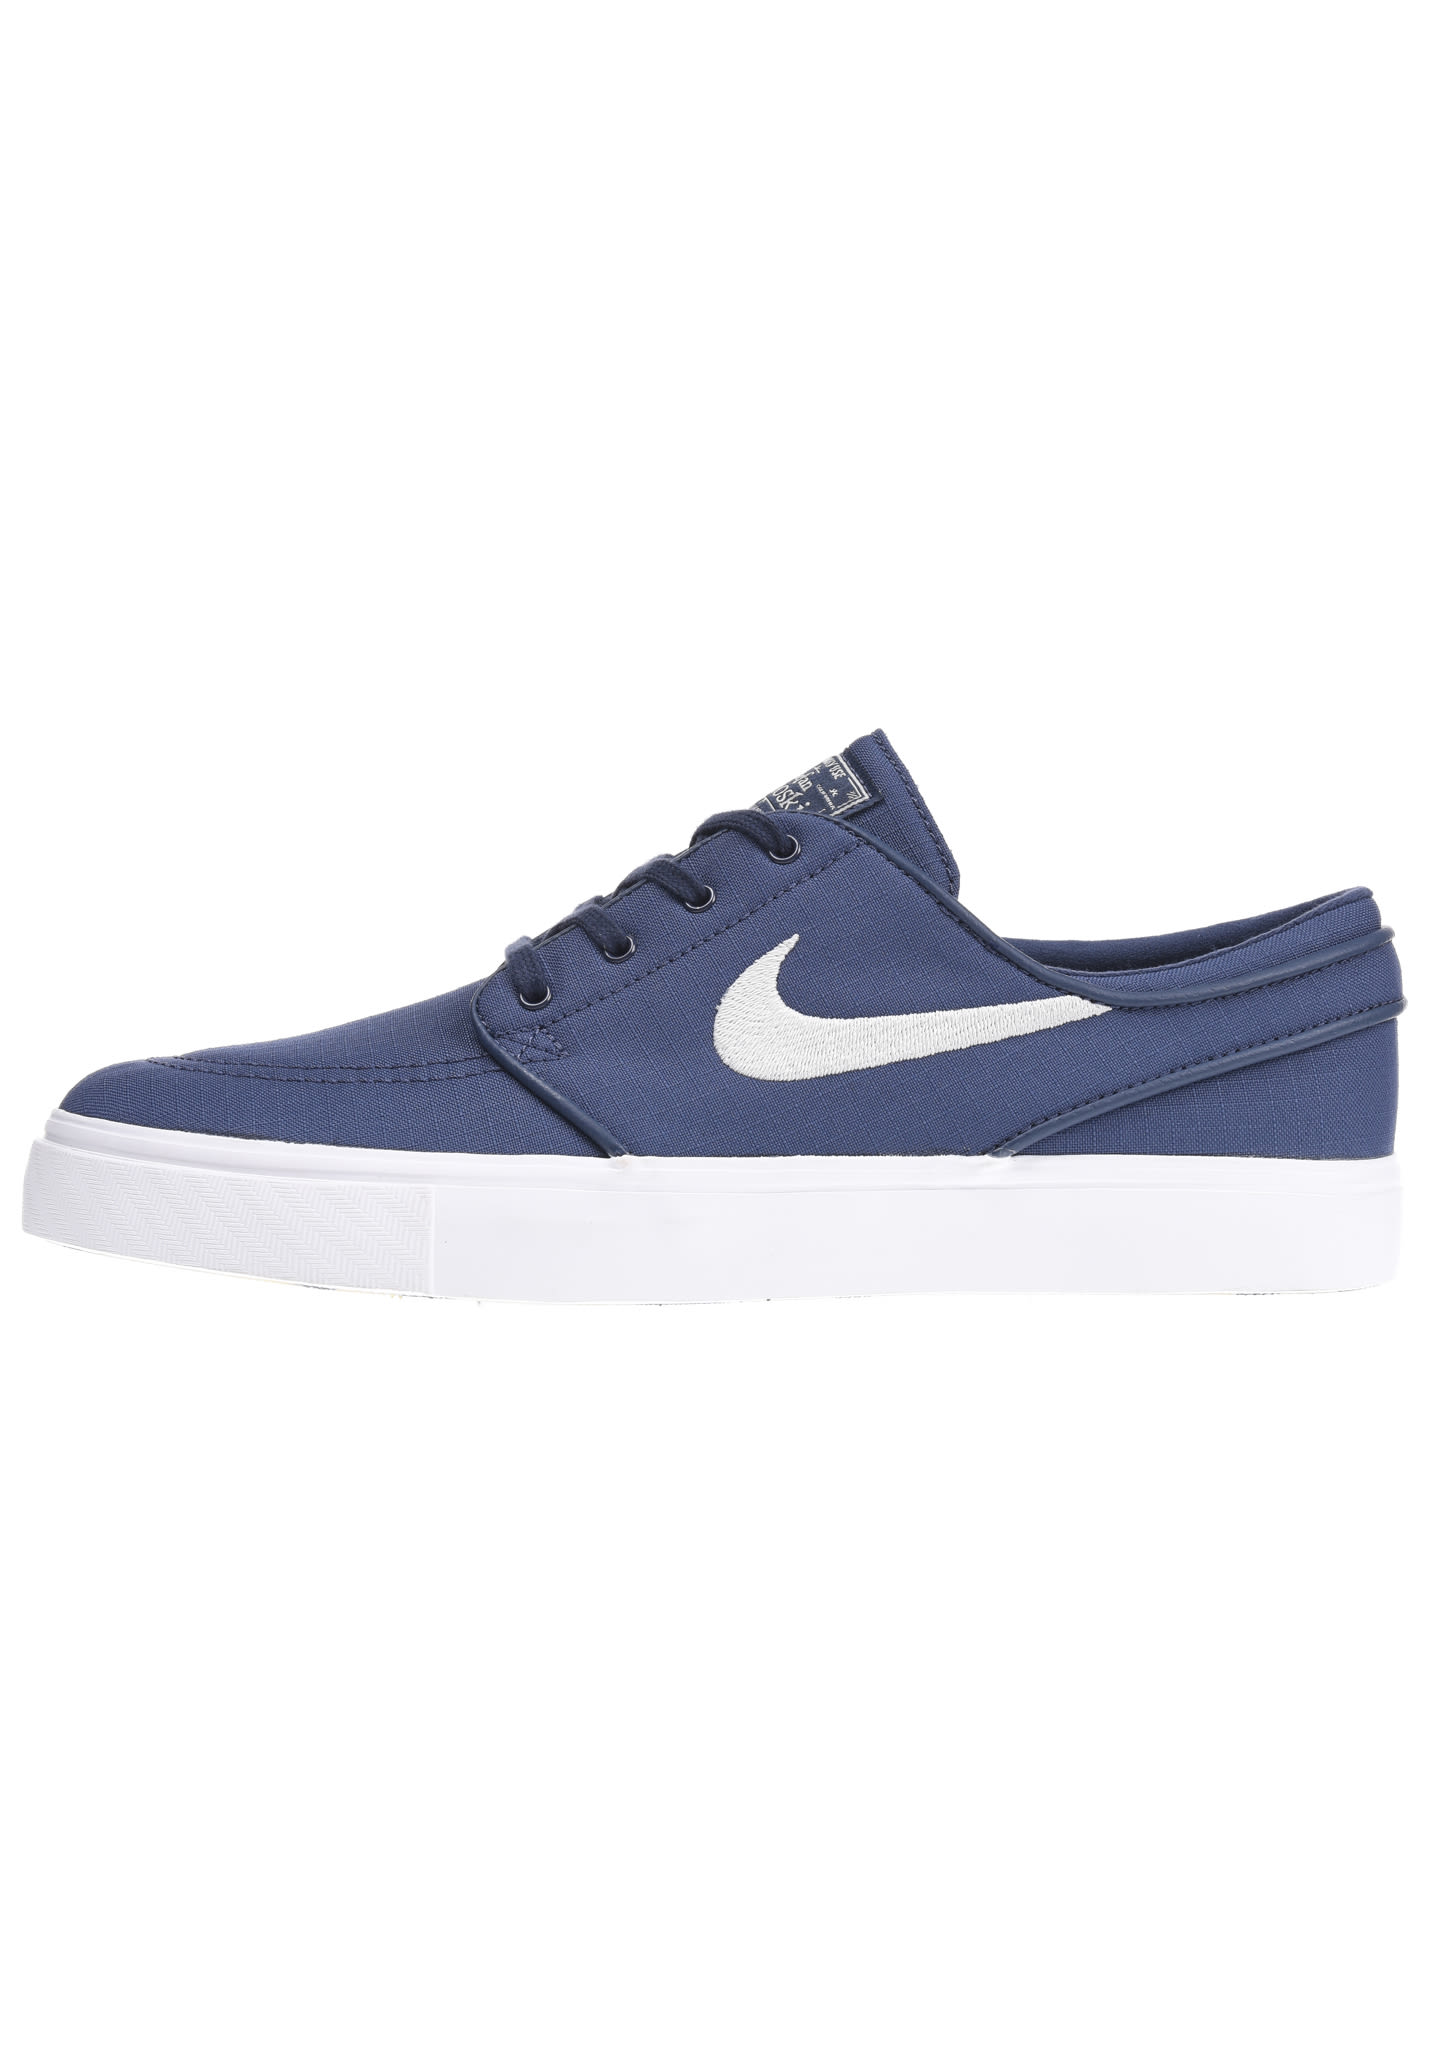 7b7012406f5be0 NIKE SB Zoom Stefan Janoski Canvas - Sneaker für Herren - Blau - Planet  Sports